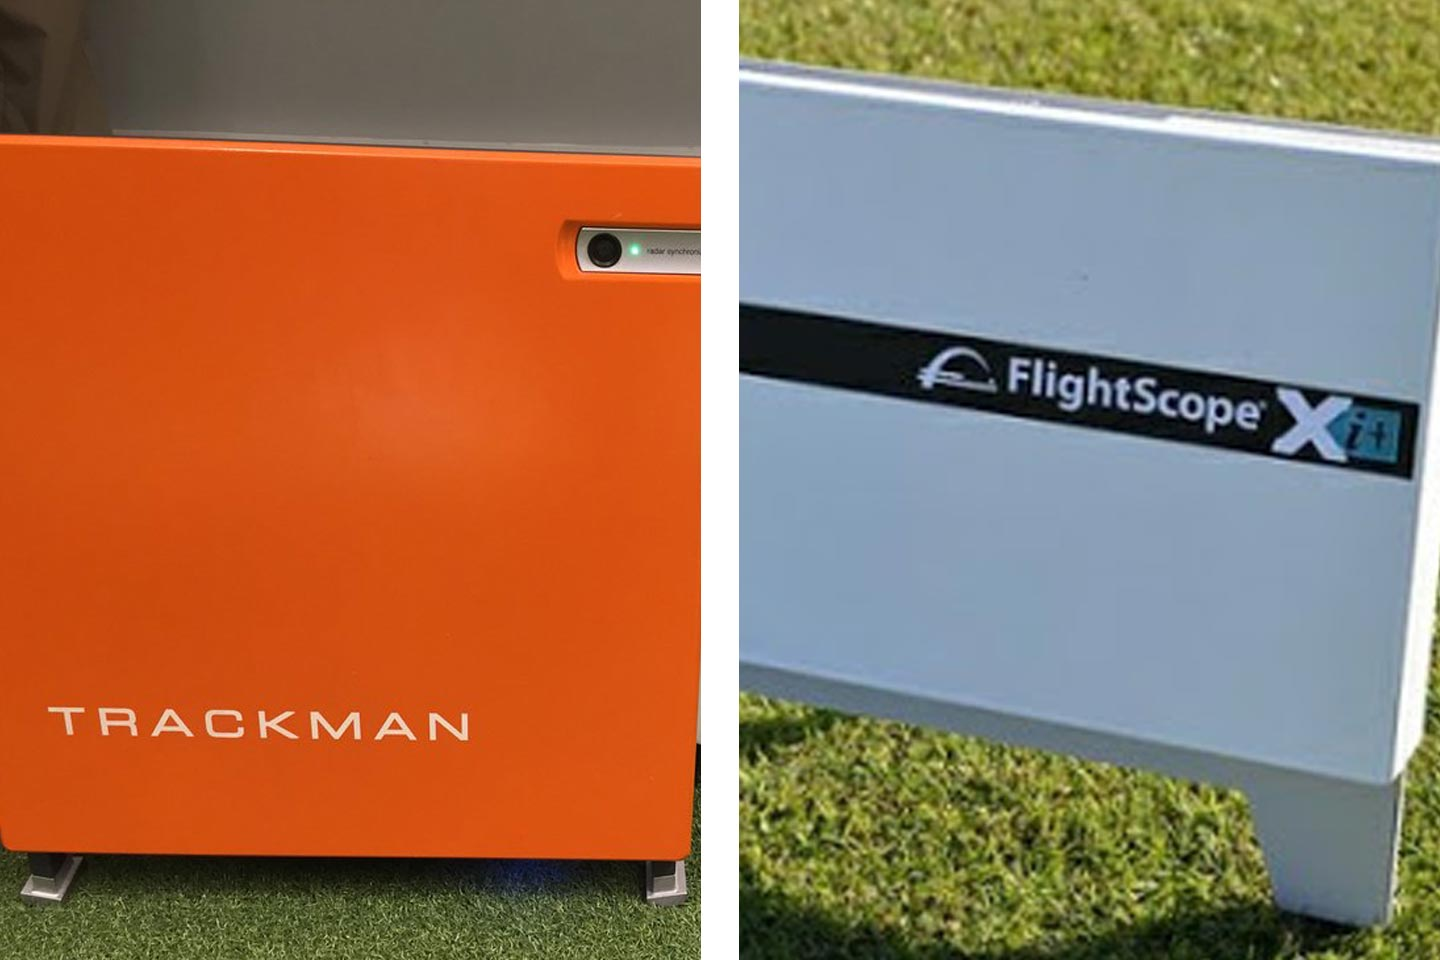 What is an alternative to using TrackMan or FlightScope?